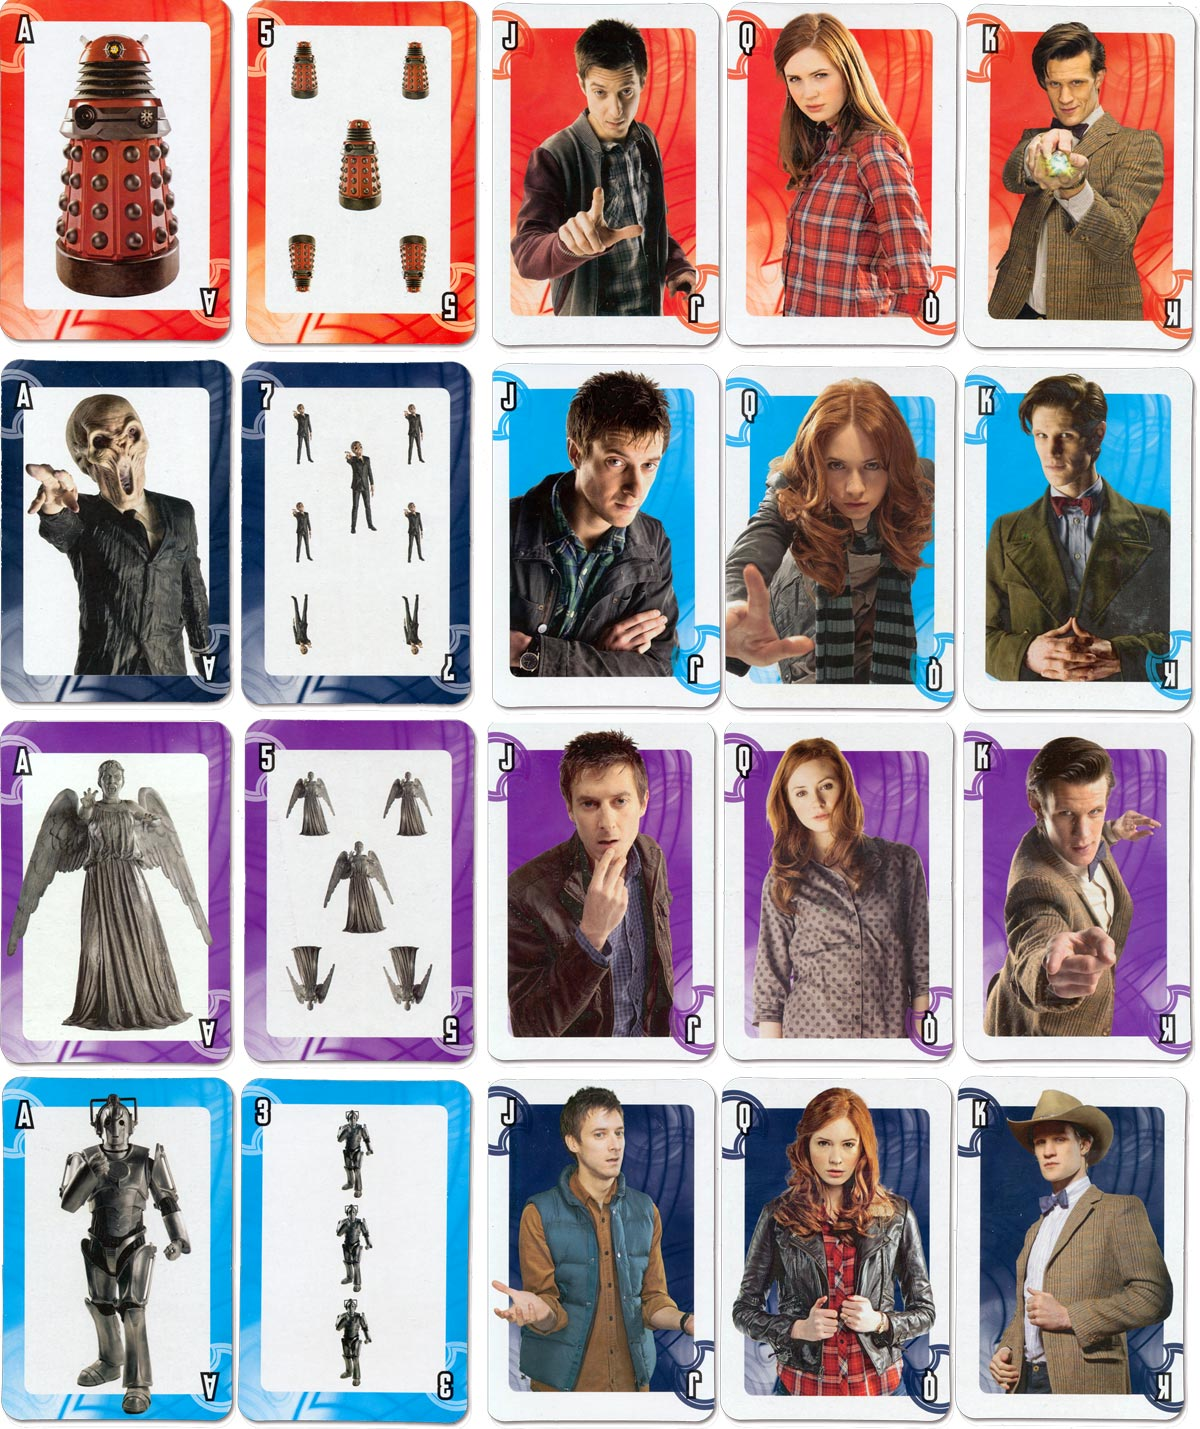 'Doctor Who Adventures' playing cards, 2009